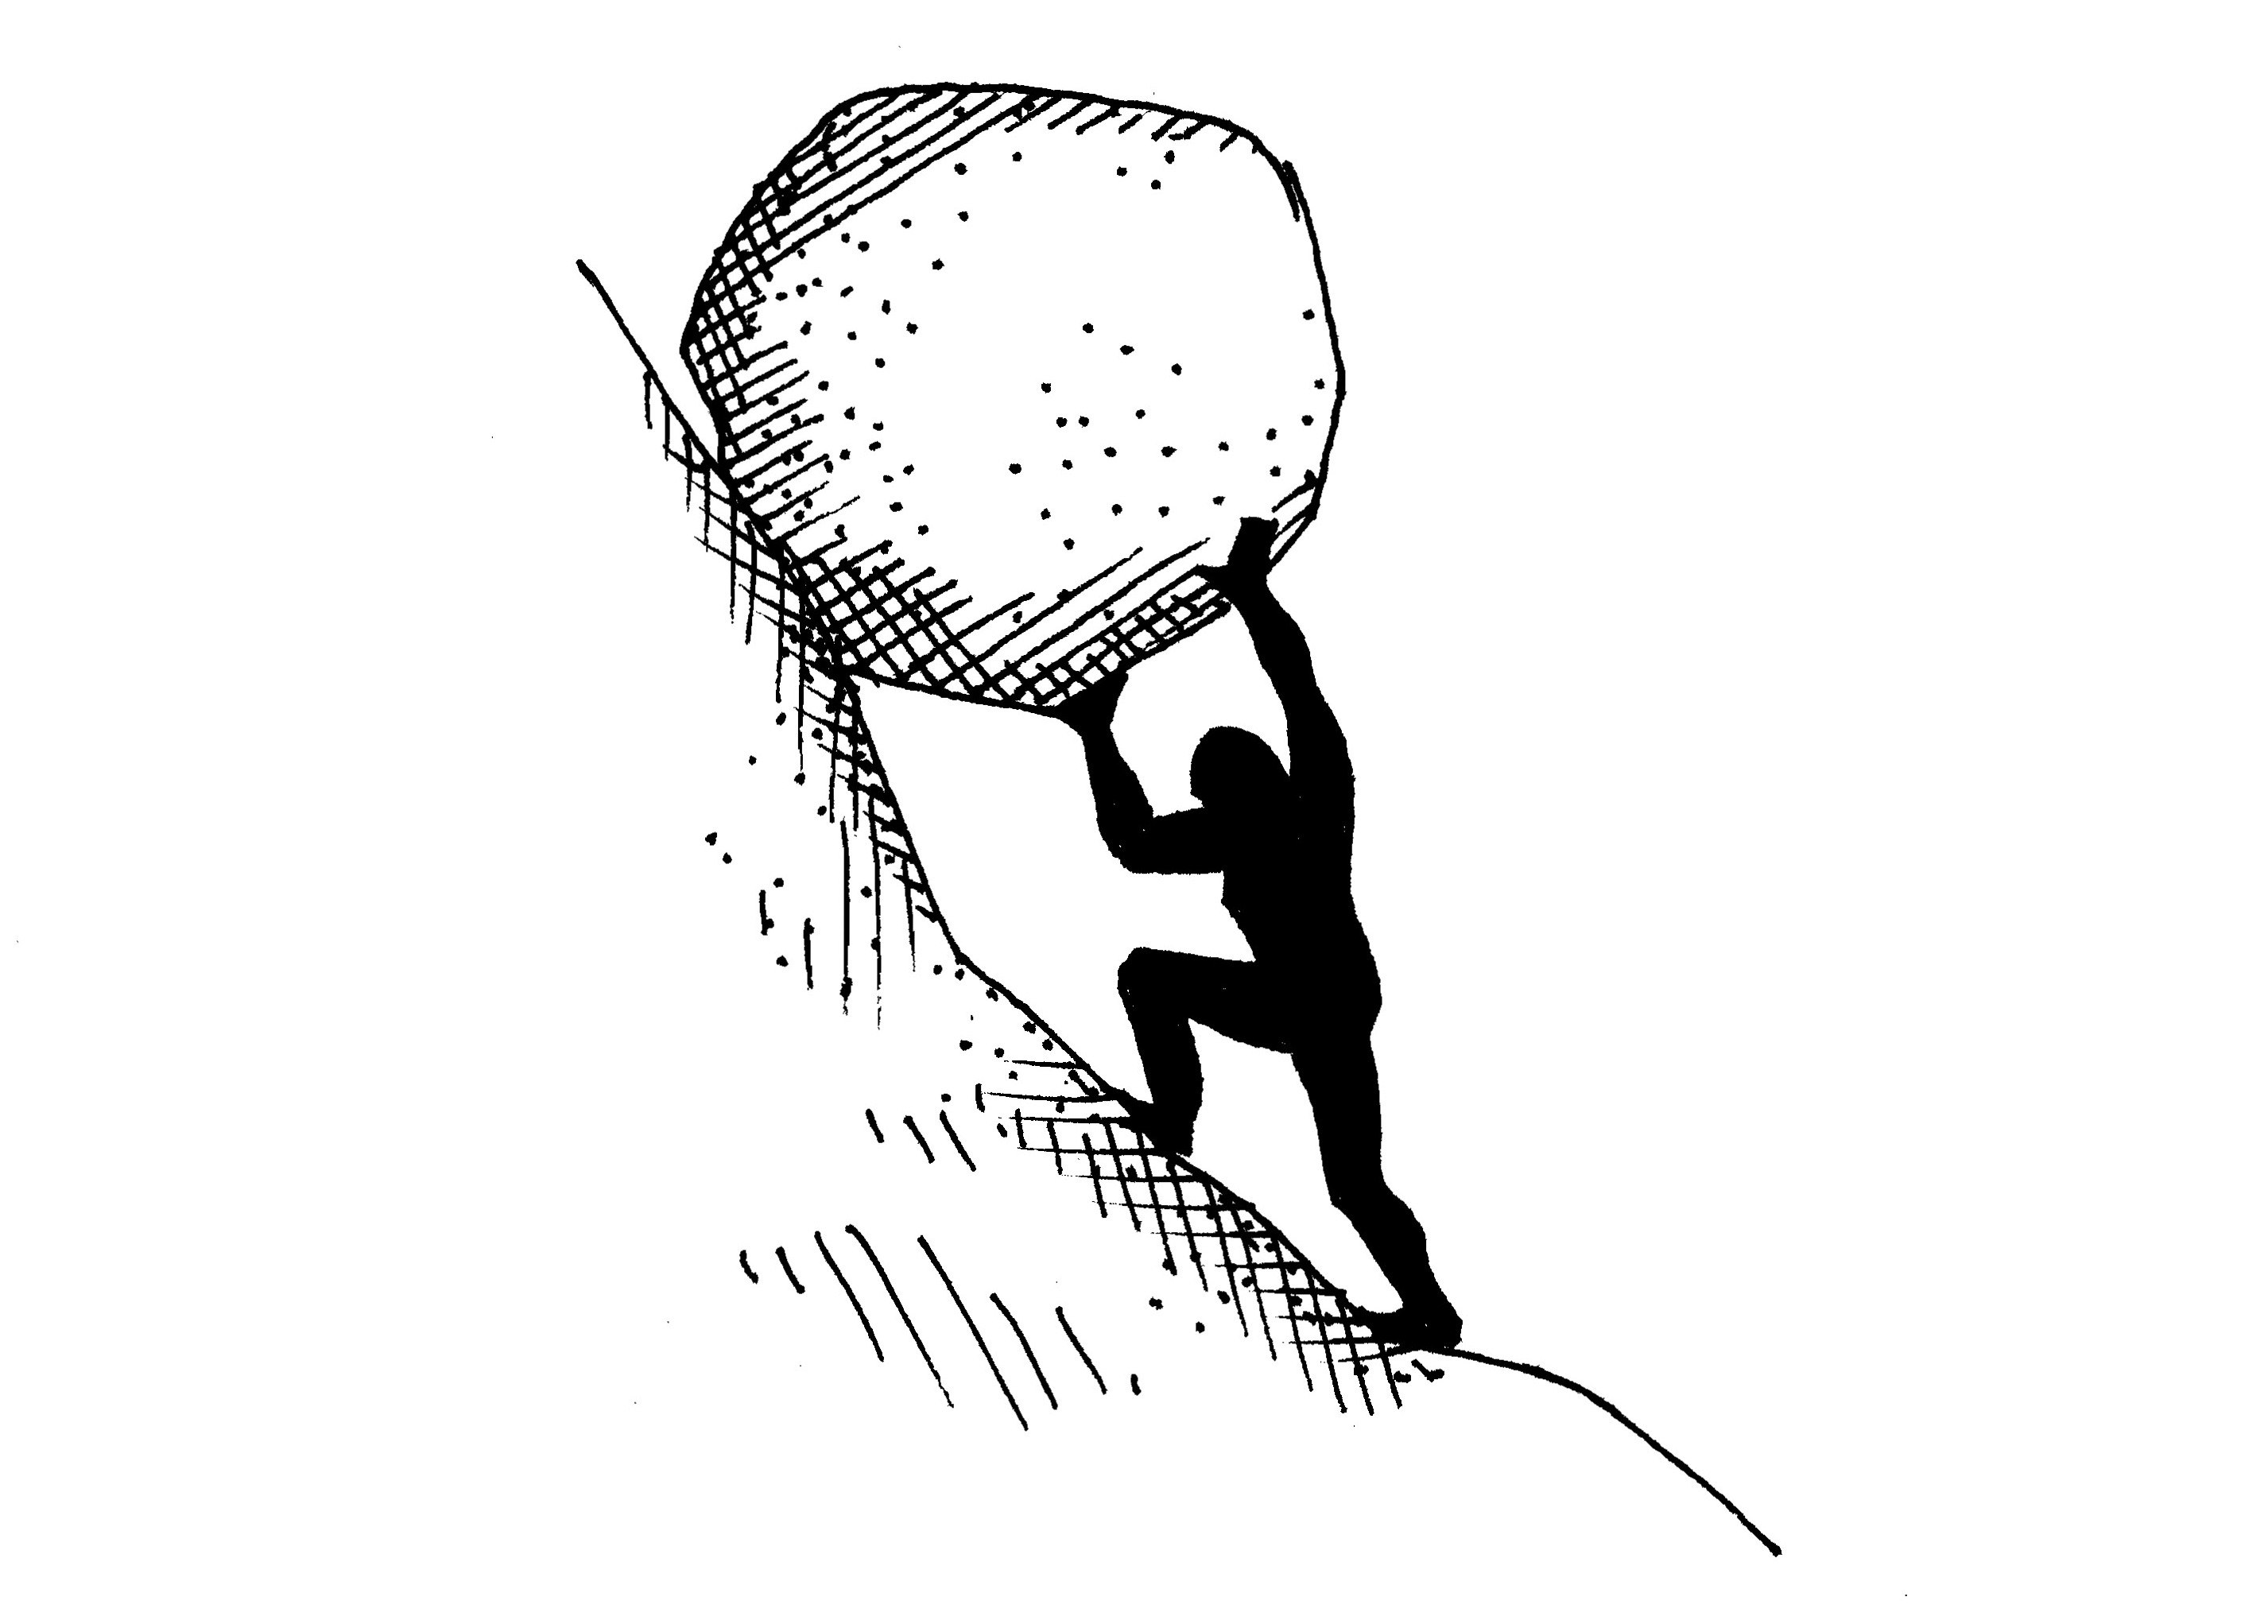 Fruitility or why evaluations. Boulder clipart uphill